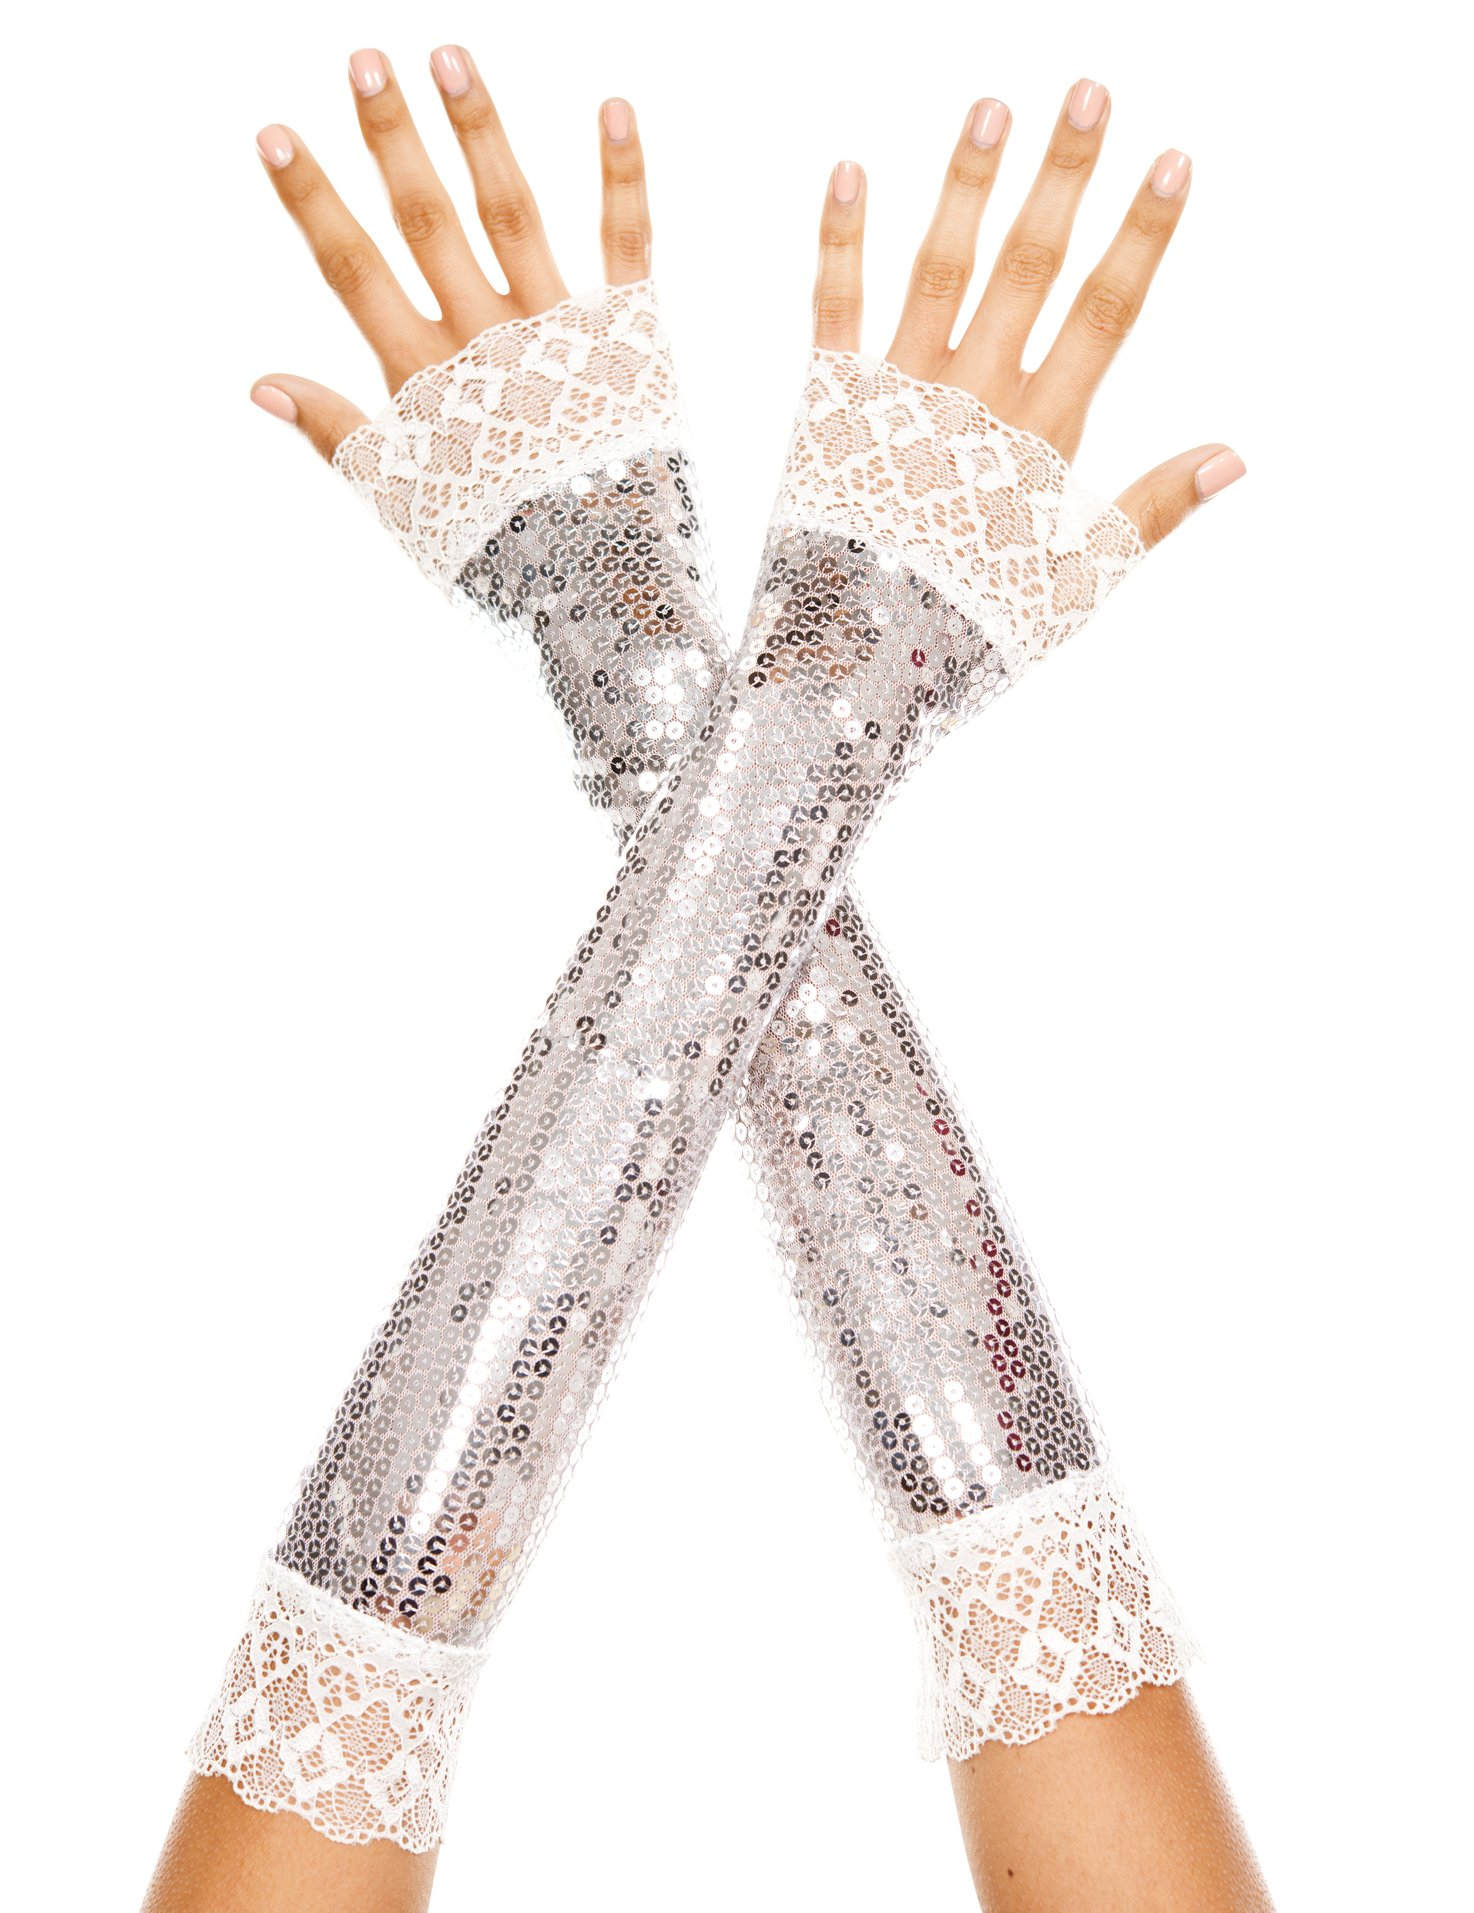 Music Legs Women's Elbow Length Sequin with Lace Arm Warmer, Silver, One Size by Music Legs (Image #1)